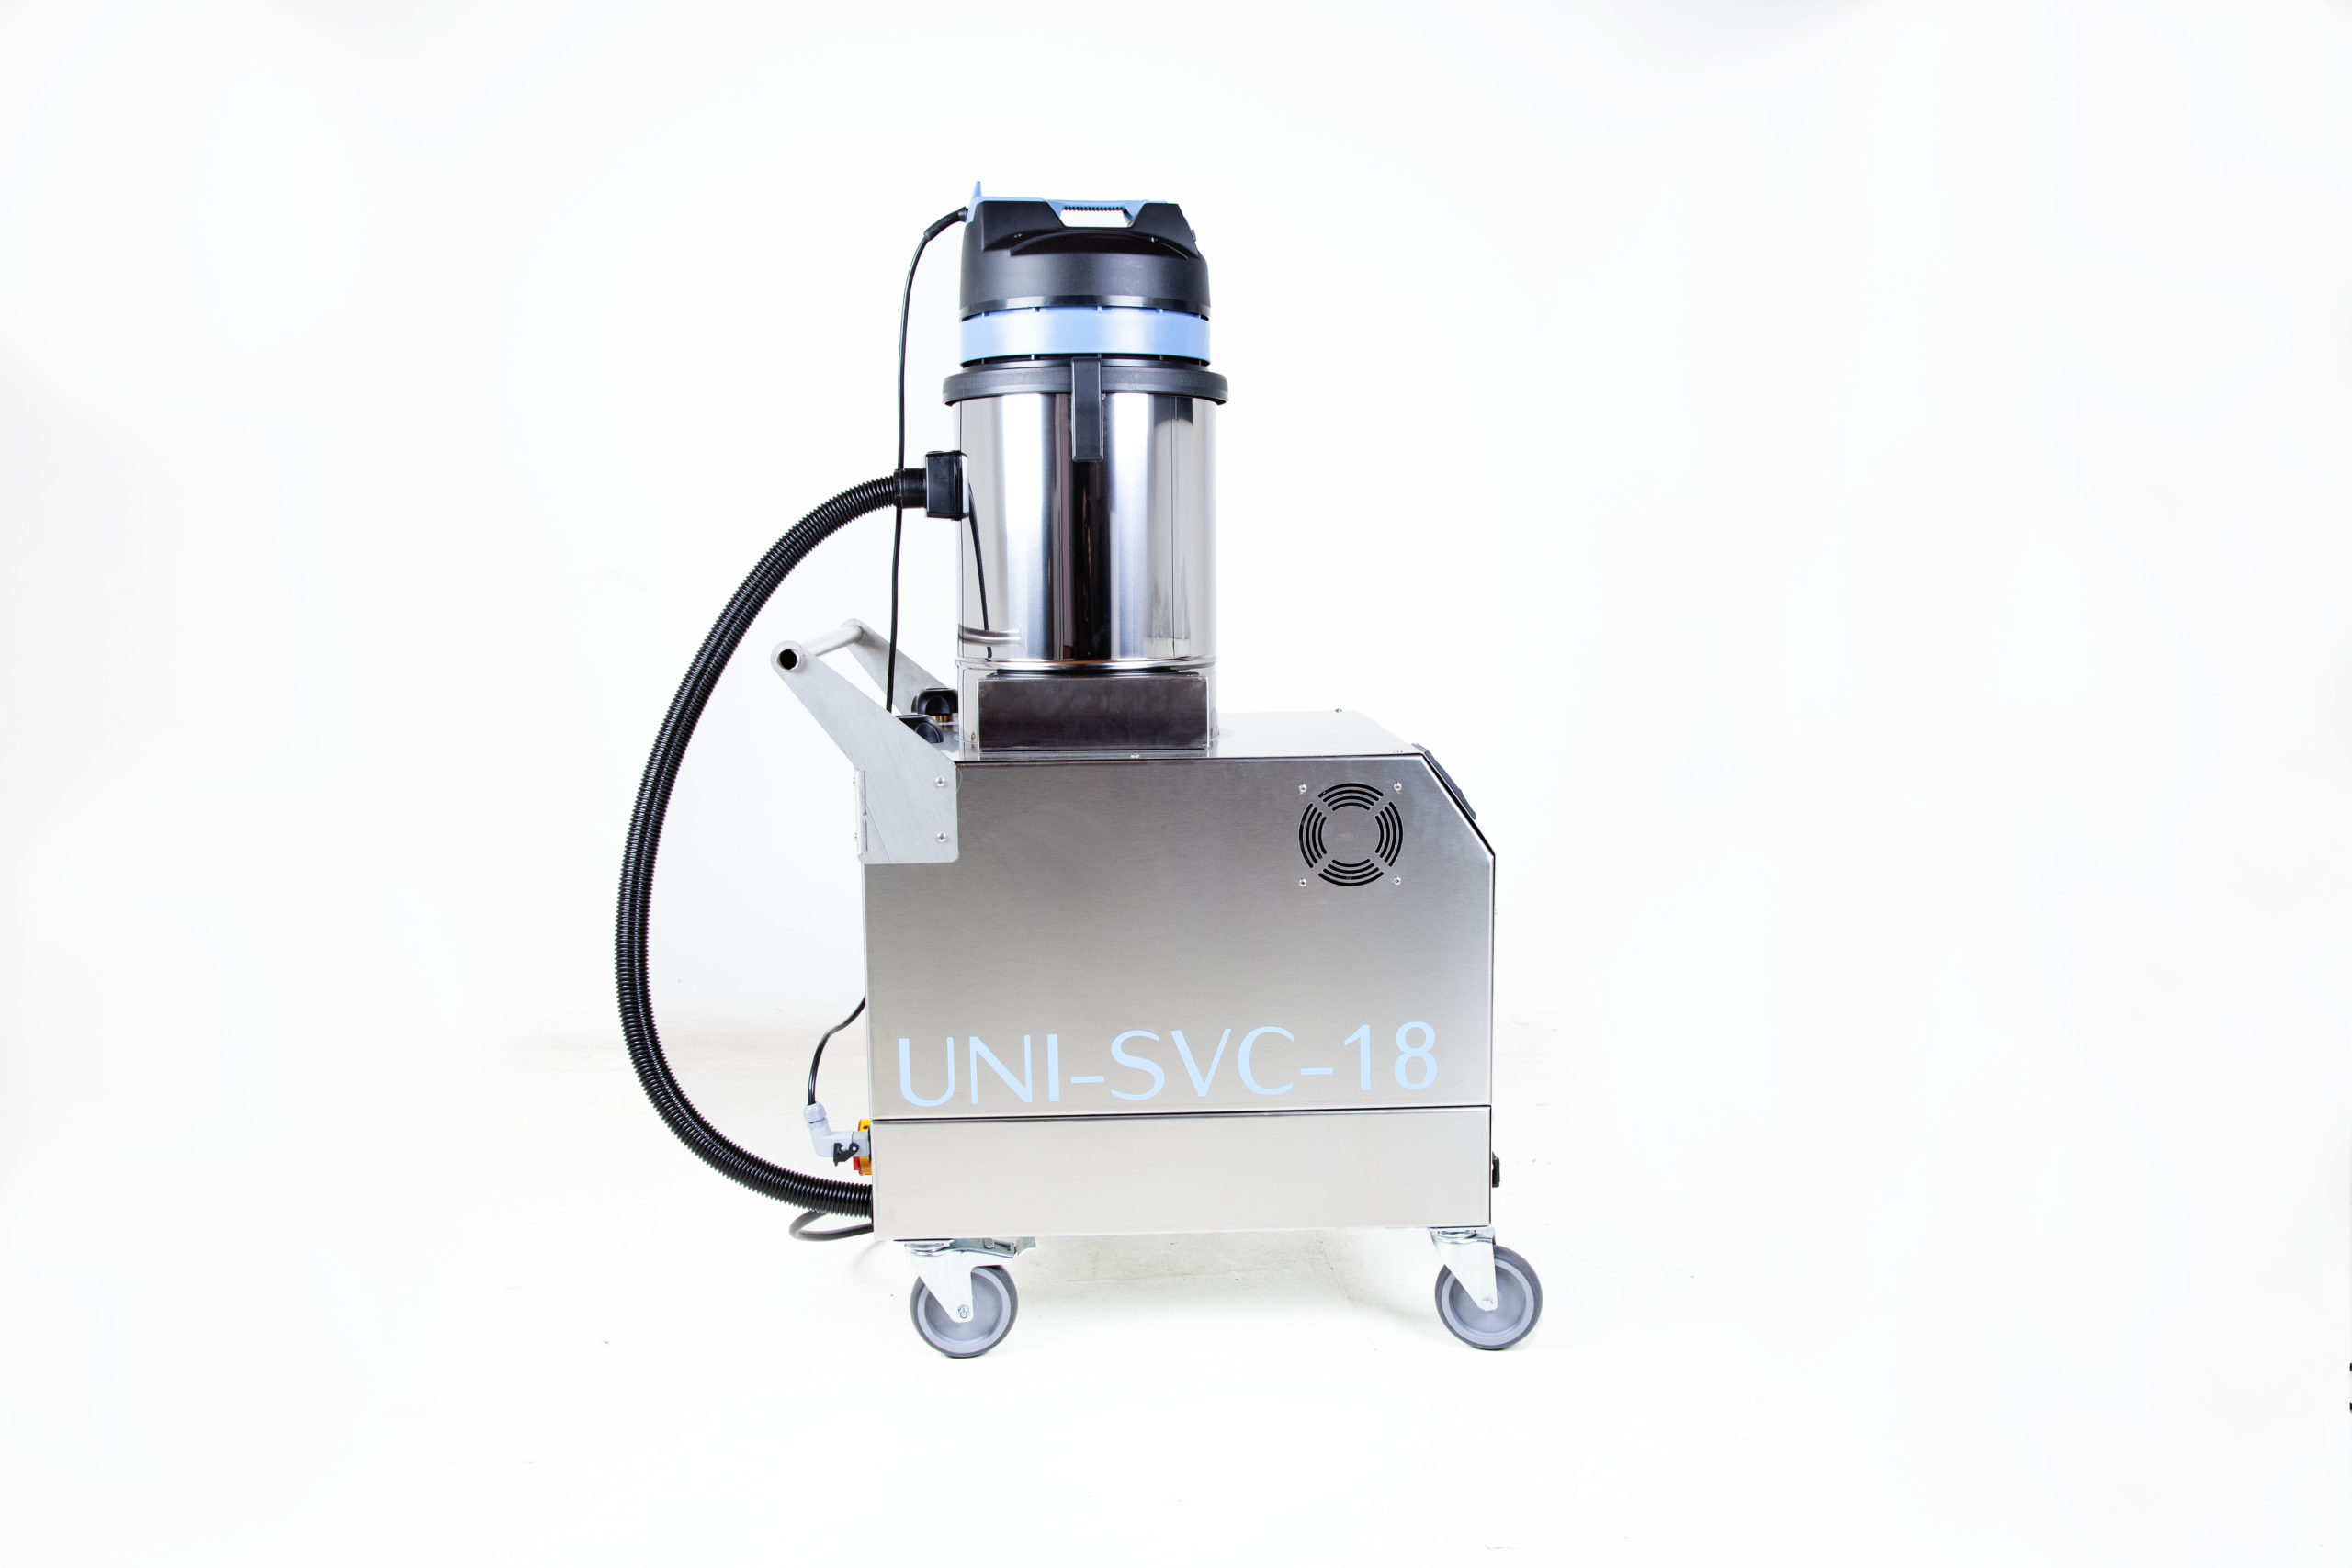 UNI SVC 9-18 Steam Cleaning Machine Right Side View